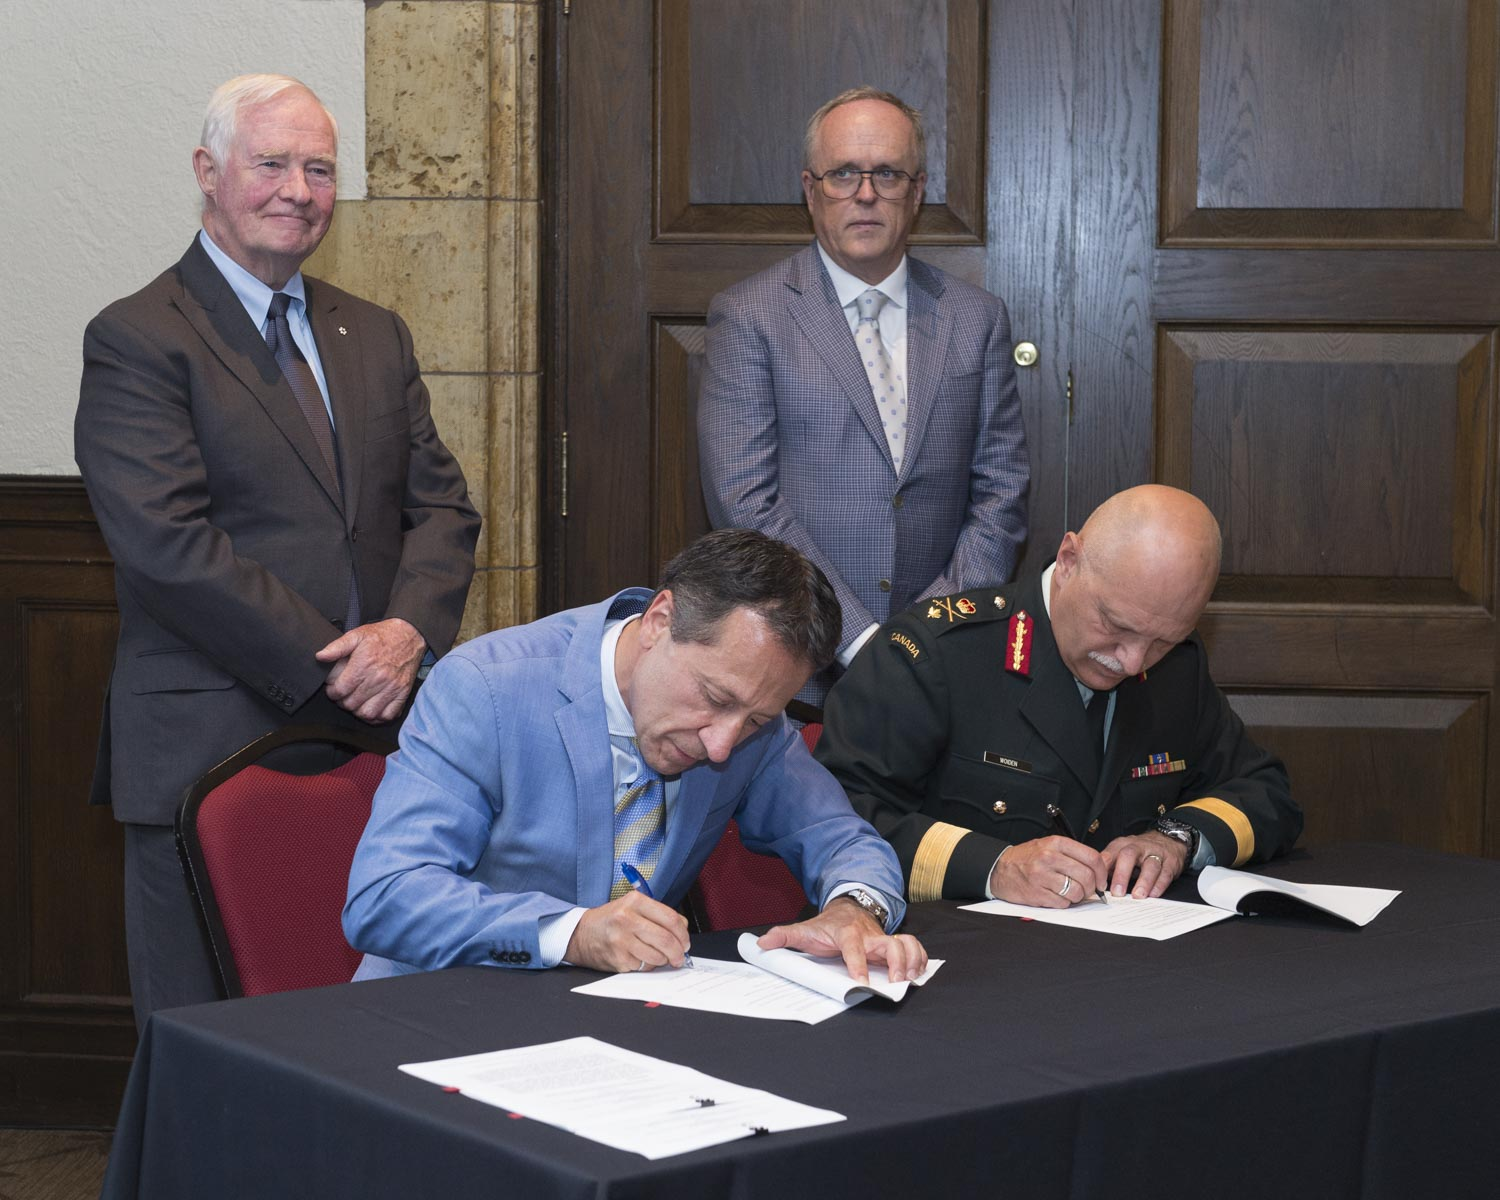 The Governor General acted as a witness to the signing of a memorandum of understanding (MOU) between the Canadian Cadet Organization and the Duke of Edinburgh's International Award Program.